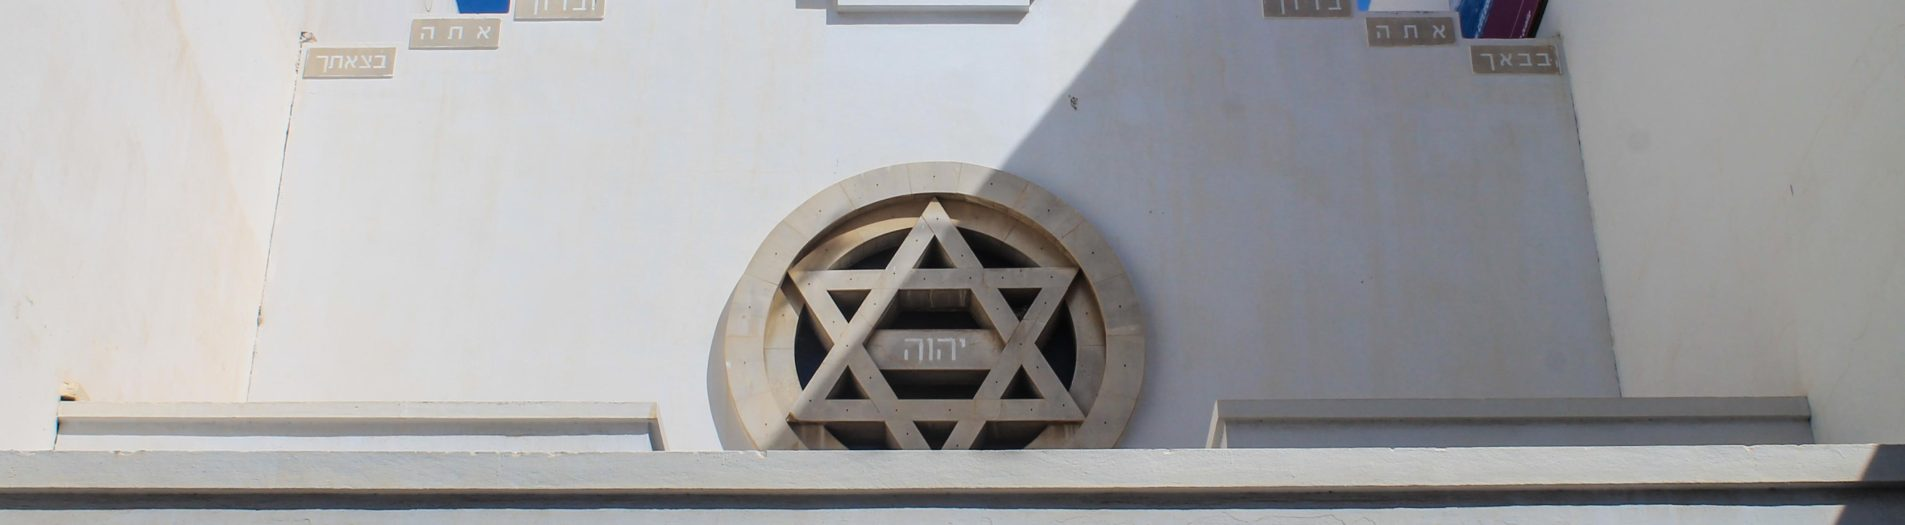 La synagogue Edmond Azria à Sfax, une copie de la grande synagogue de Tunis mais… en miniature